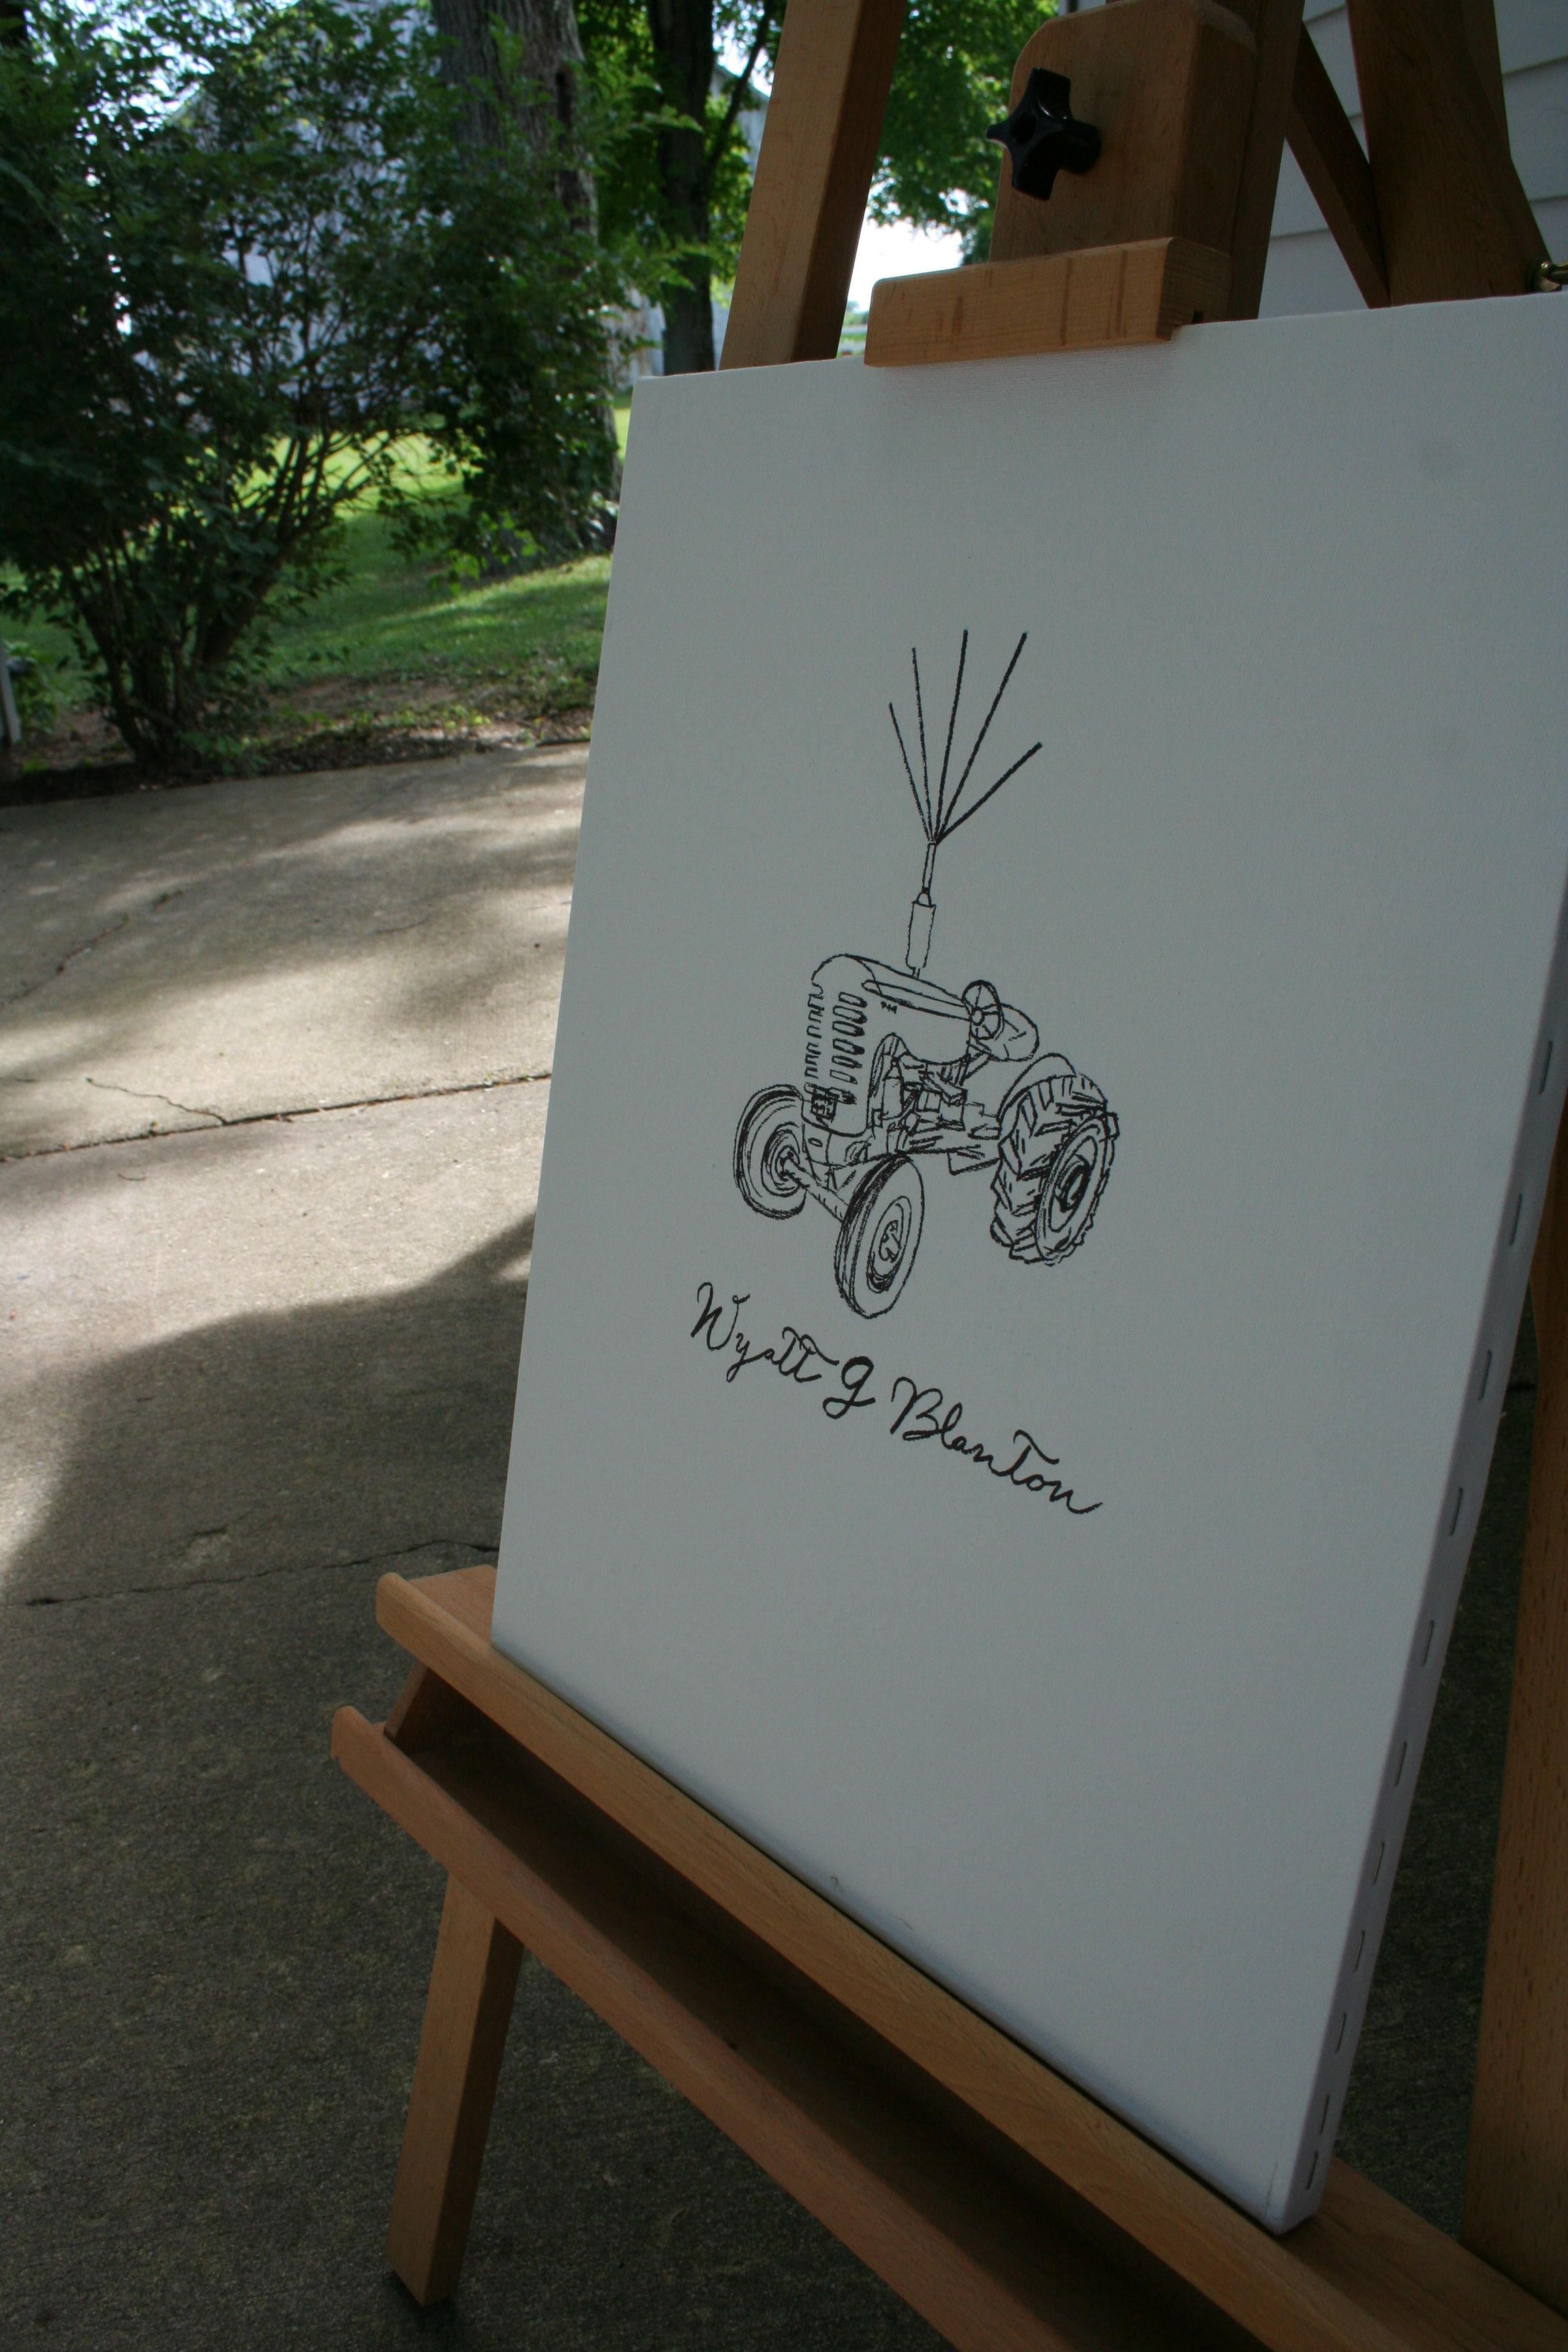 DIY fingerprint tractor w/ ballons guestbook and keepsake artwork for little boy's first birthday | thelovelylauralife.com